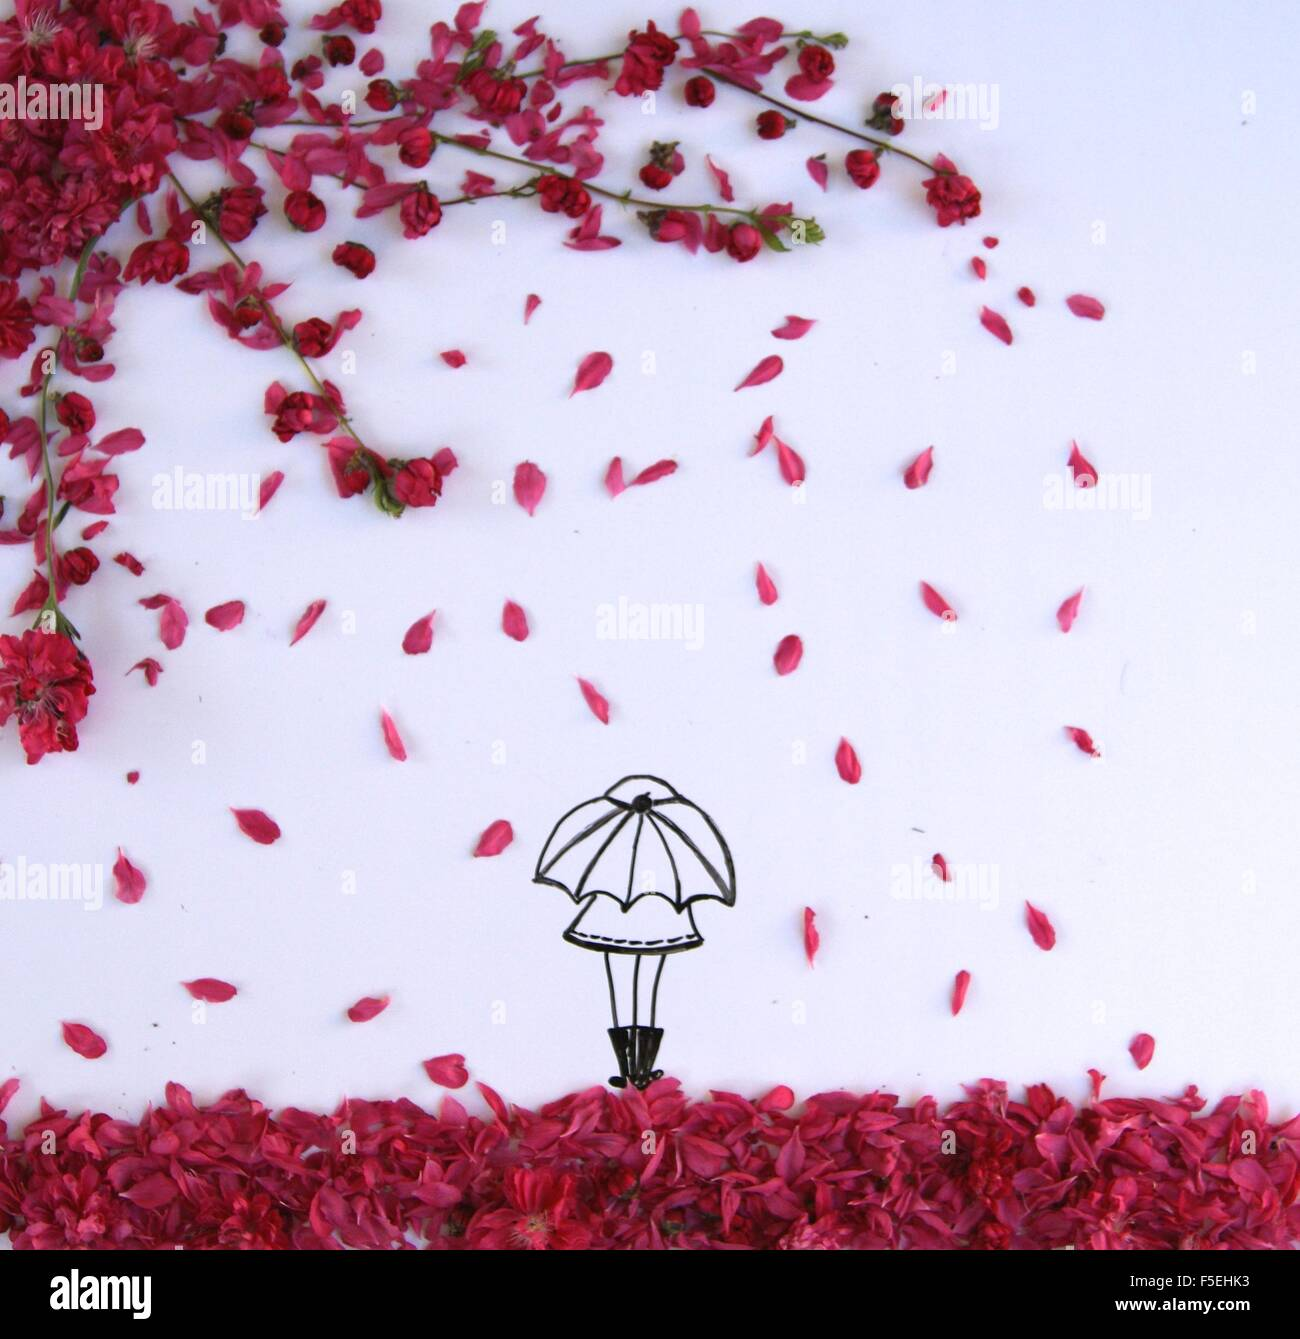 Conceptual drawing of a girl standing under an umbrella during spring blossom shower - Stock Image